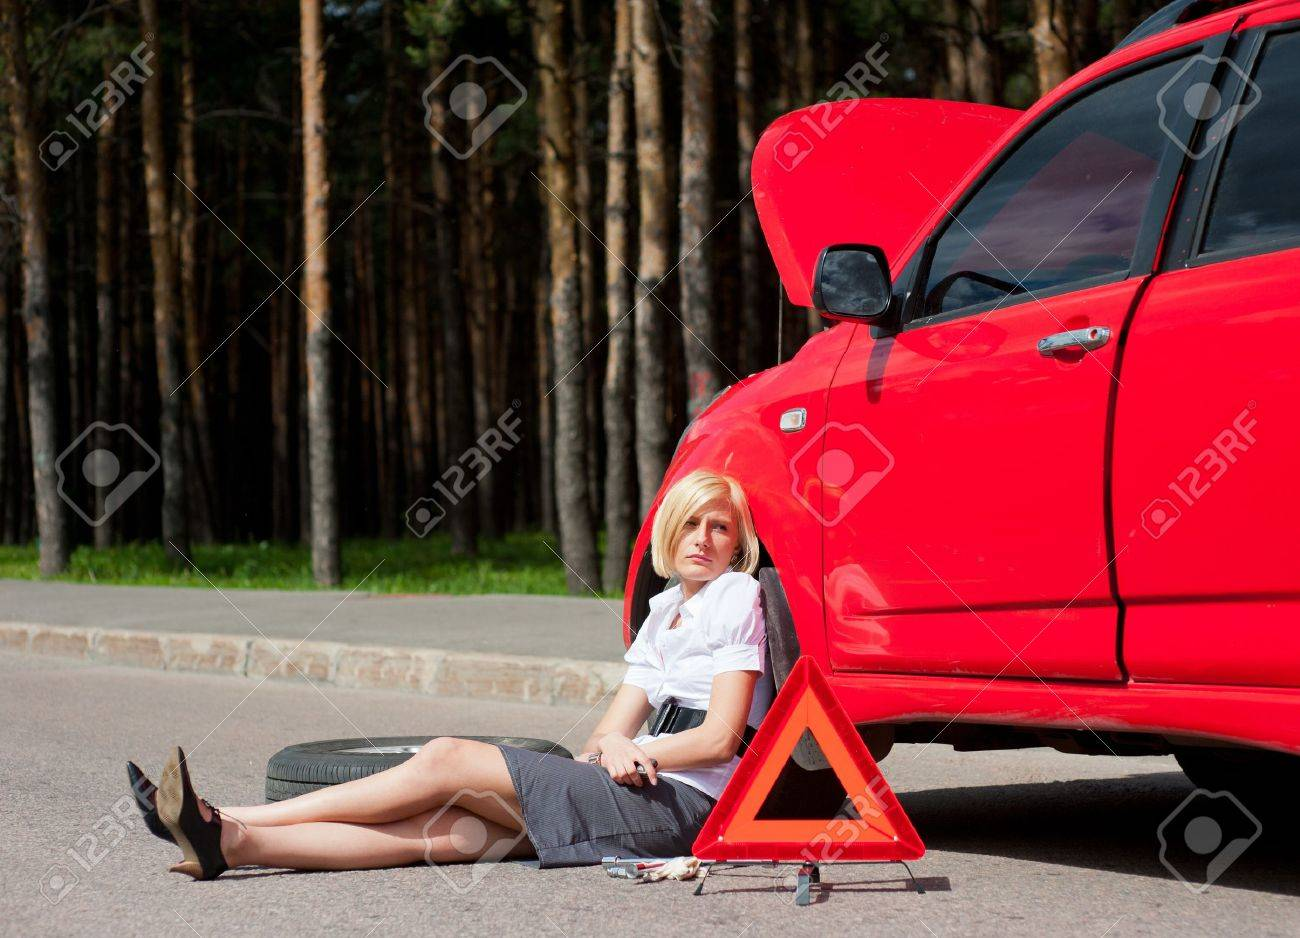 Blonde girl sitting near broken car and waiting for help Stock Photo - 10065378